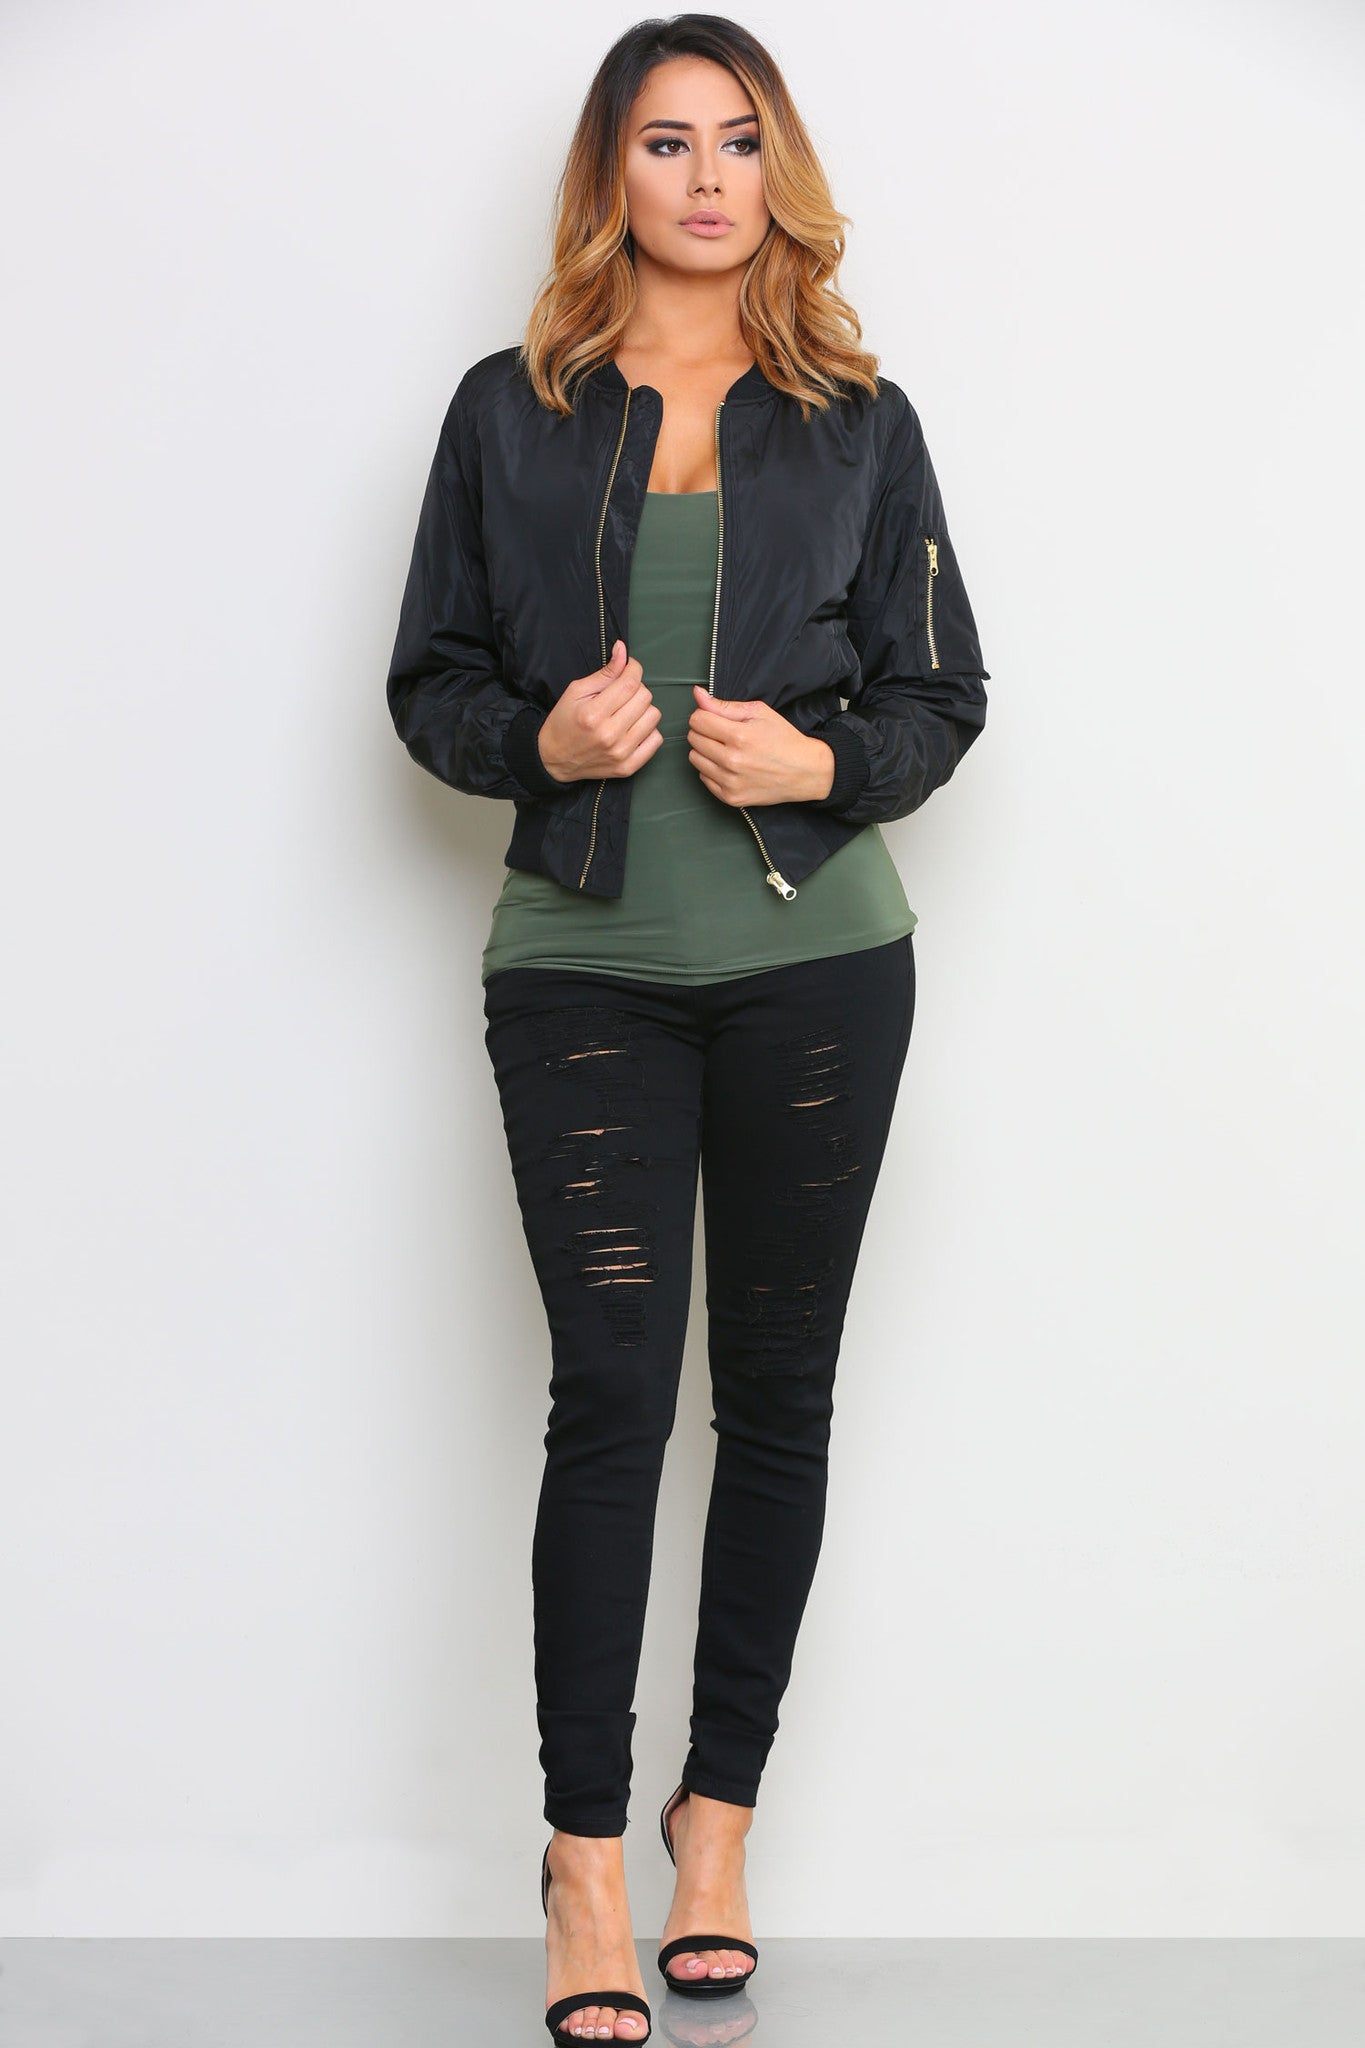 CHRISTINE BOMBER JACKET - Glam Envy - 2